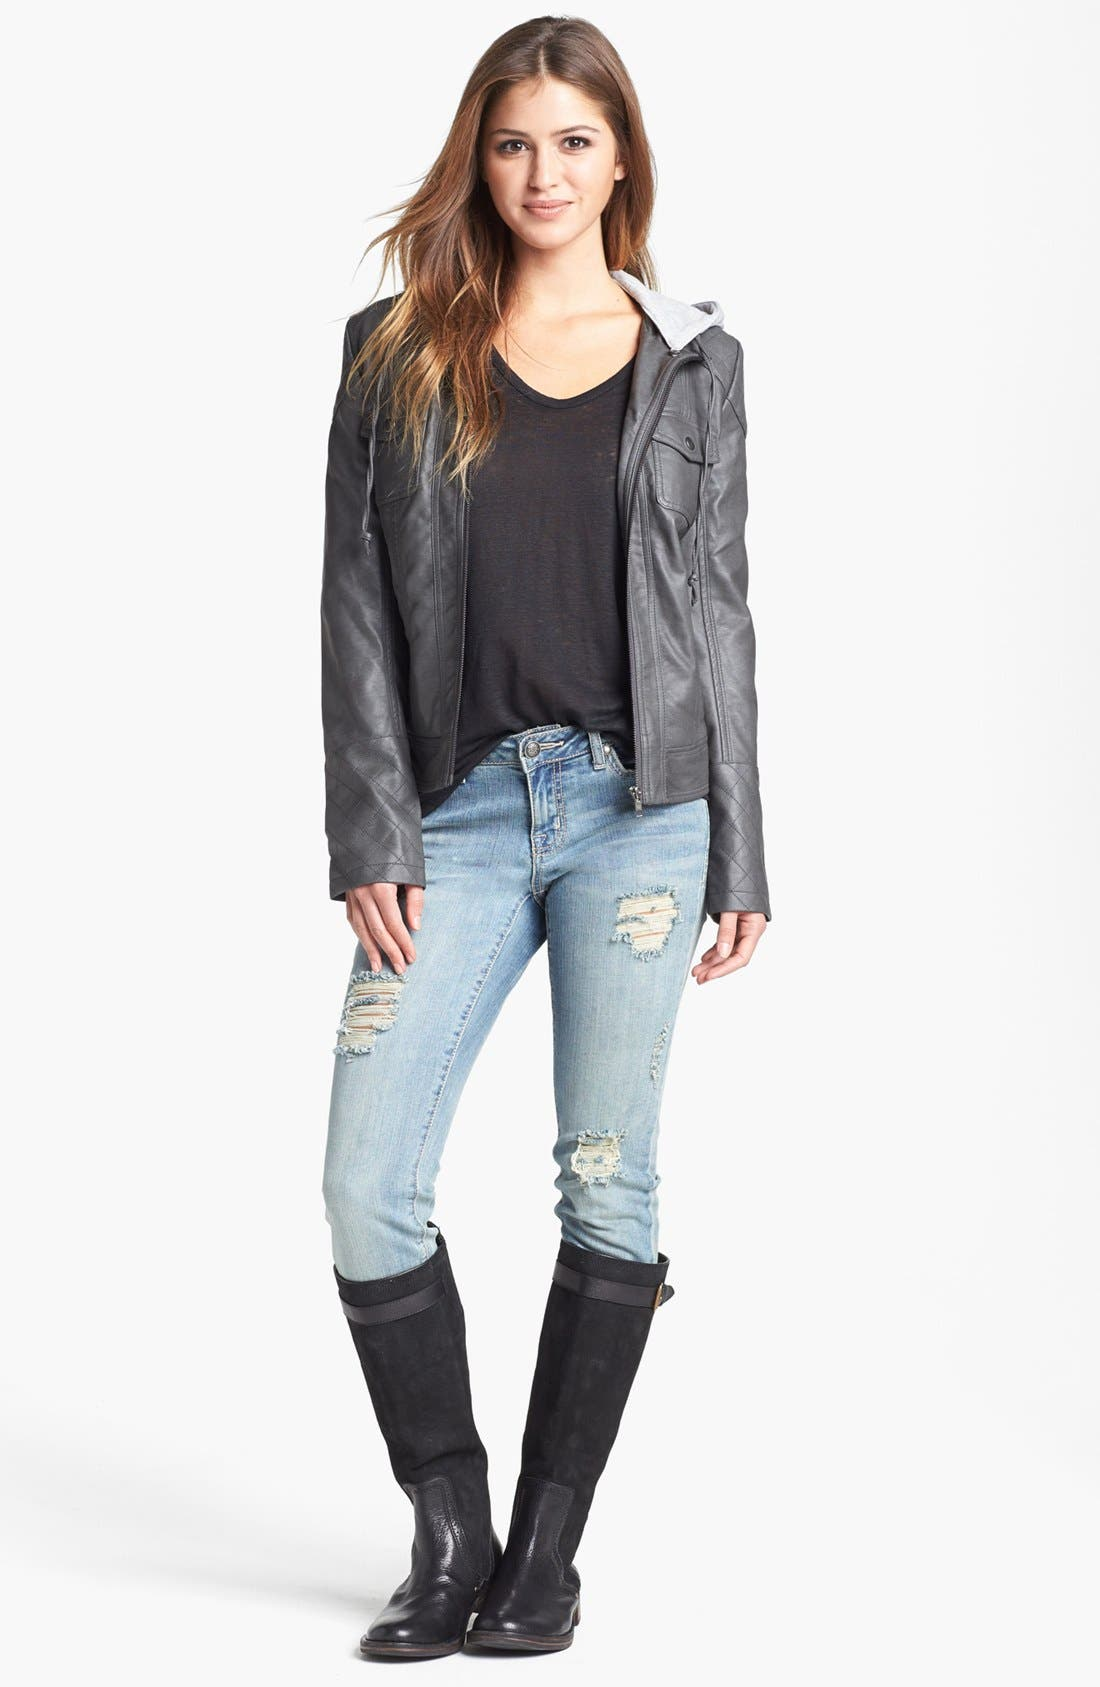 Alternate Image 1 Selected - Jessica Simpson 'Heathcliff' Hooded Faux Leather Jacket